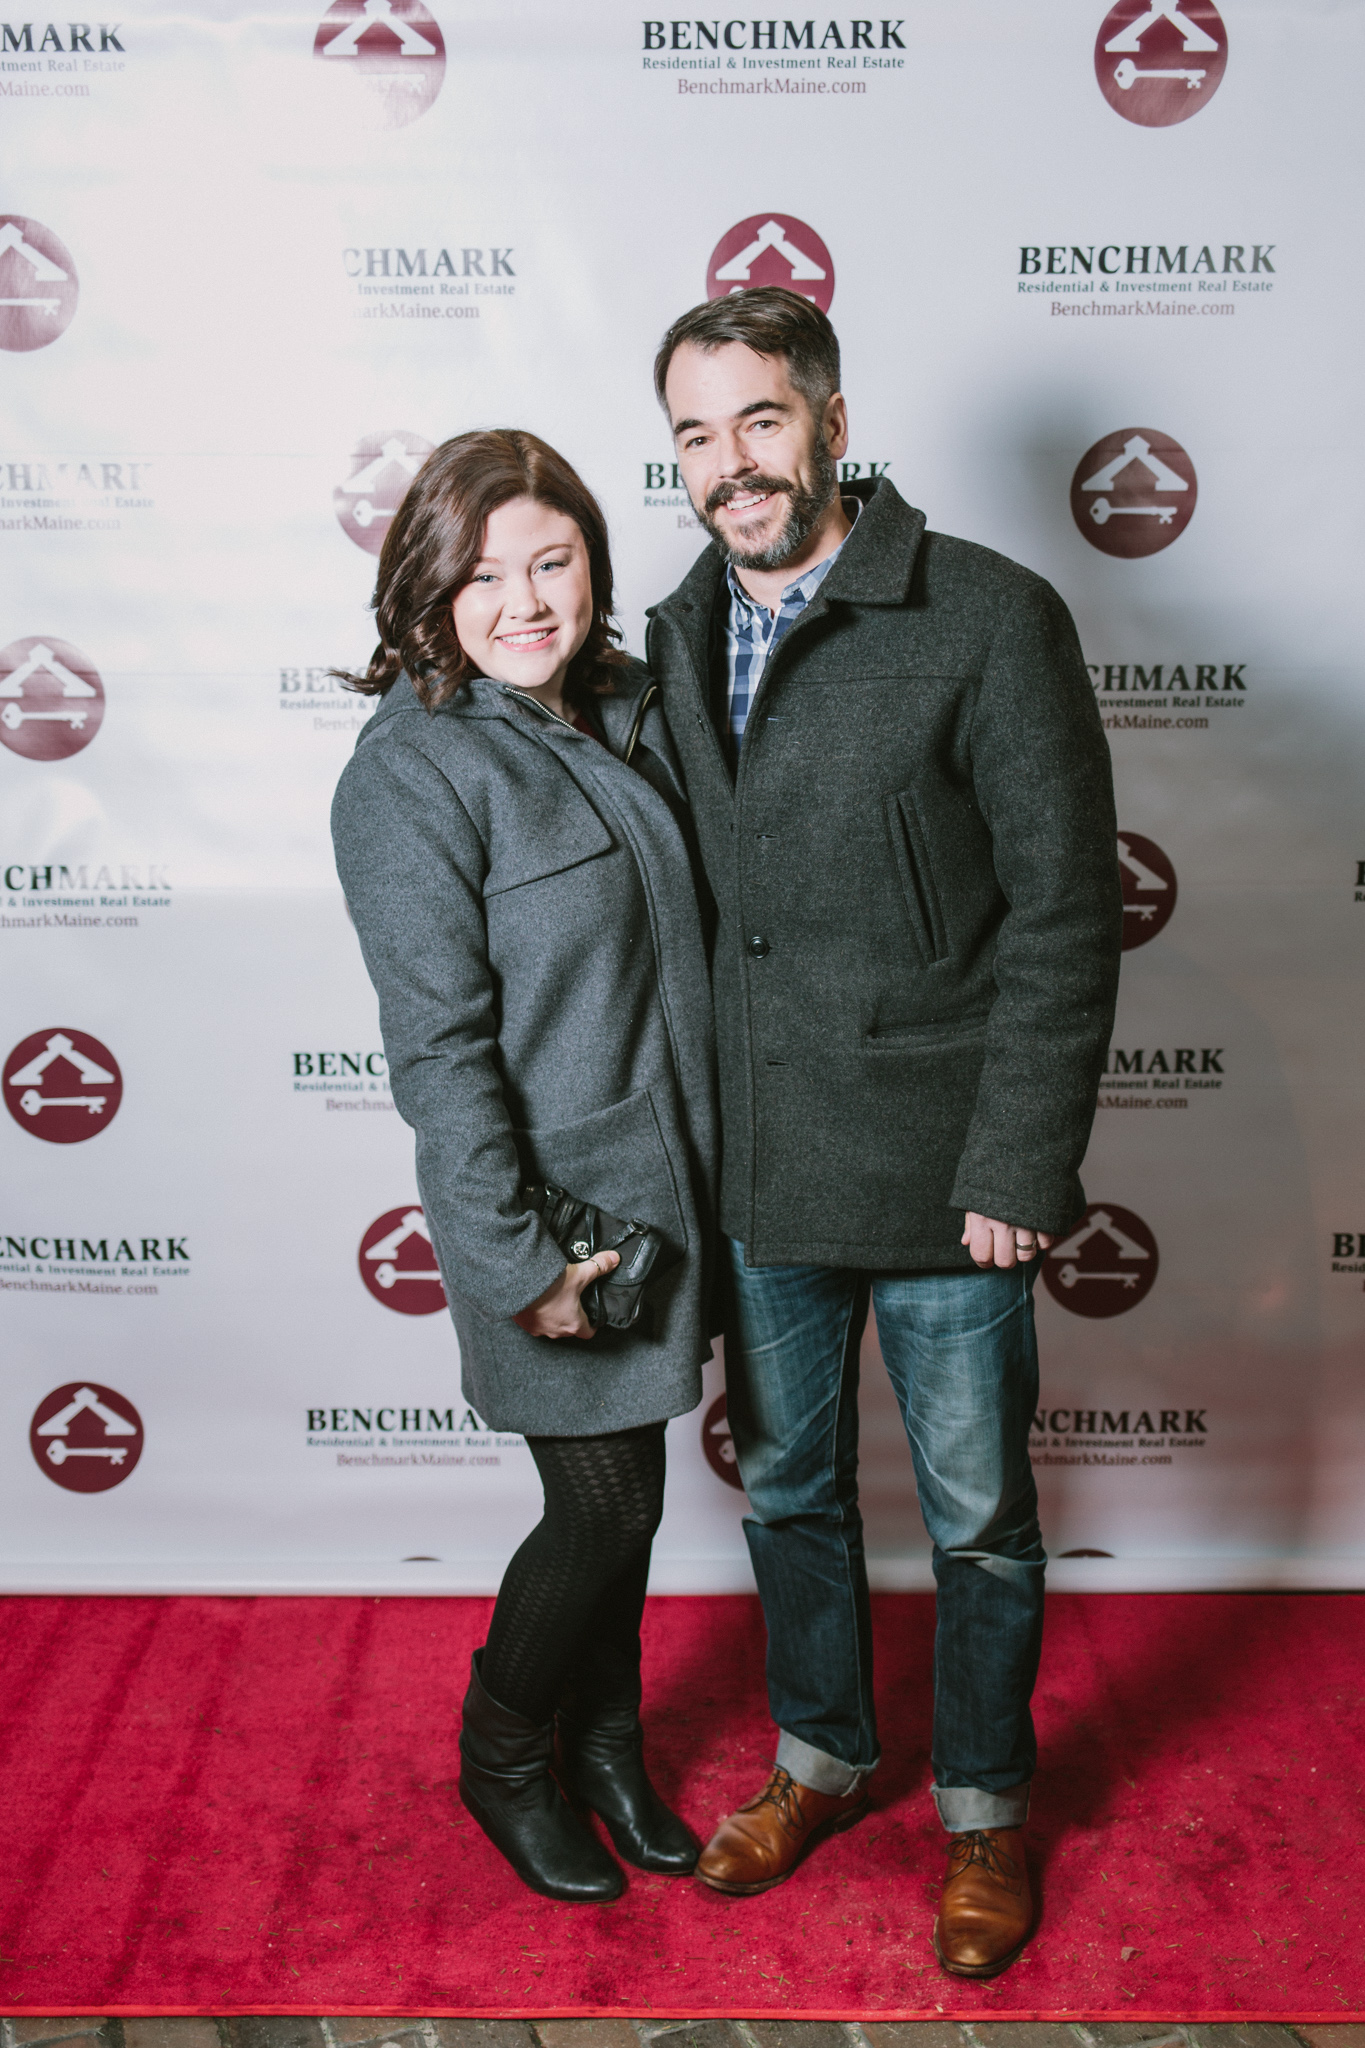 Benchmark_Holiday_Party_SR-042.jpg